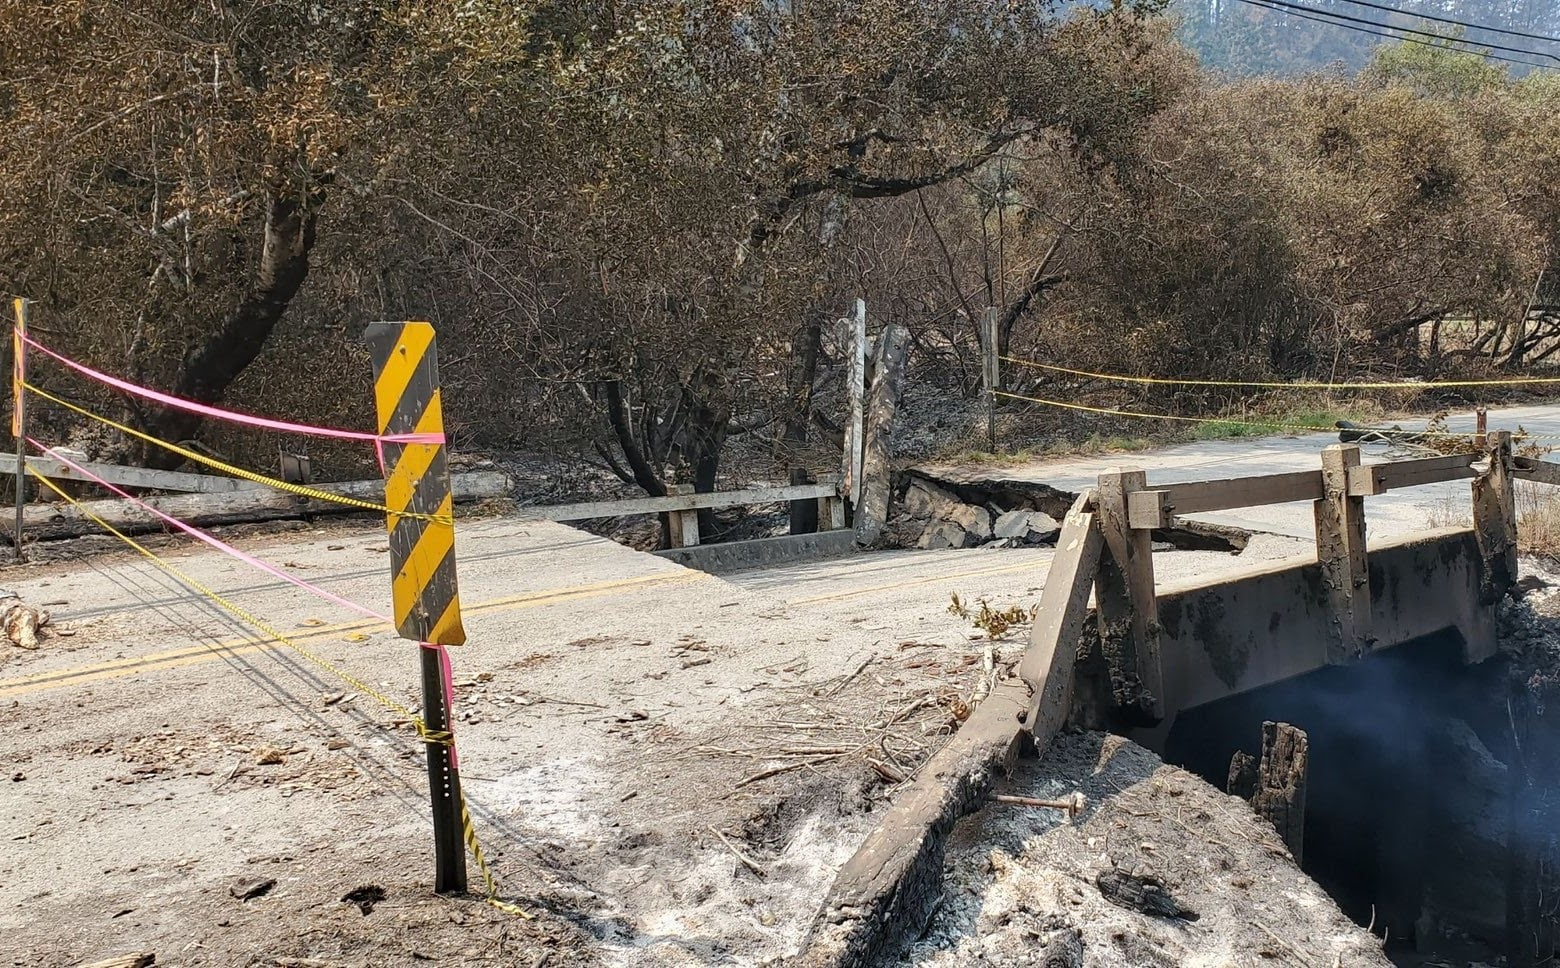 A road is closed after damage during the CZU Lightning Complex Fire in 2020. (Cal Fire)